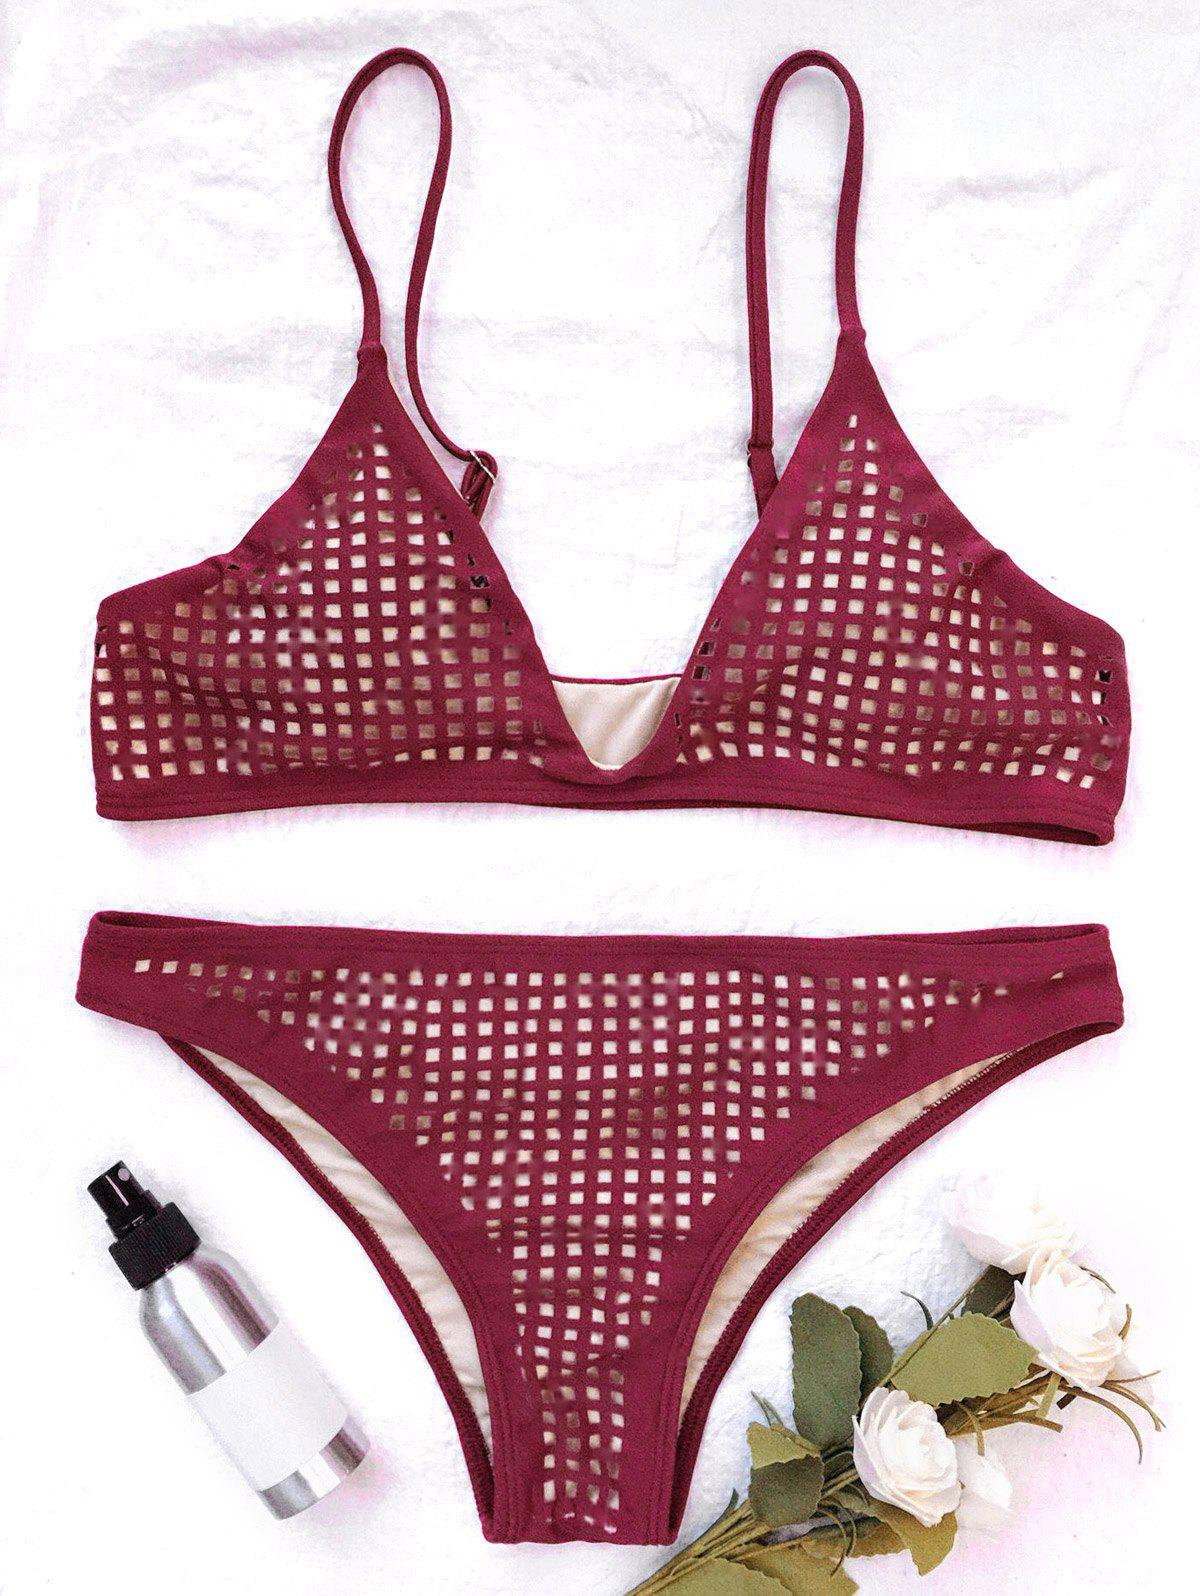 Square Cut Out Bikini Top and Bottoms girls cut and sew top